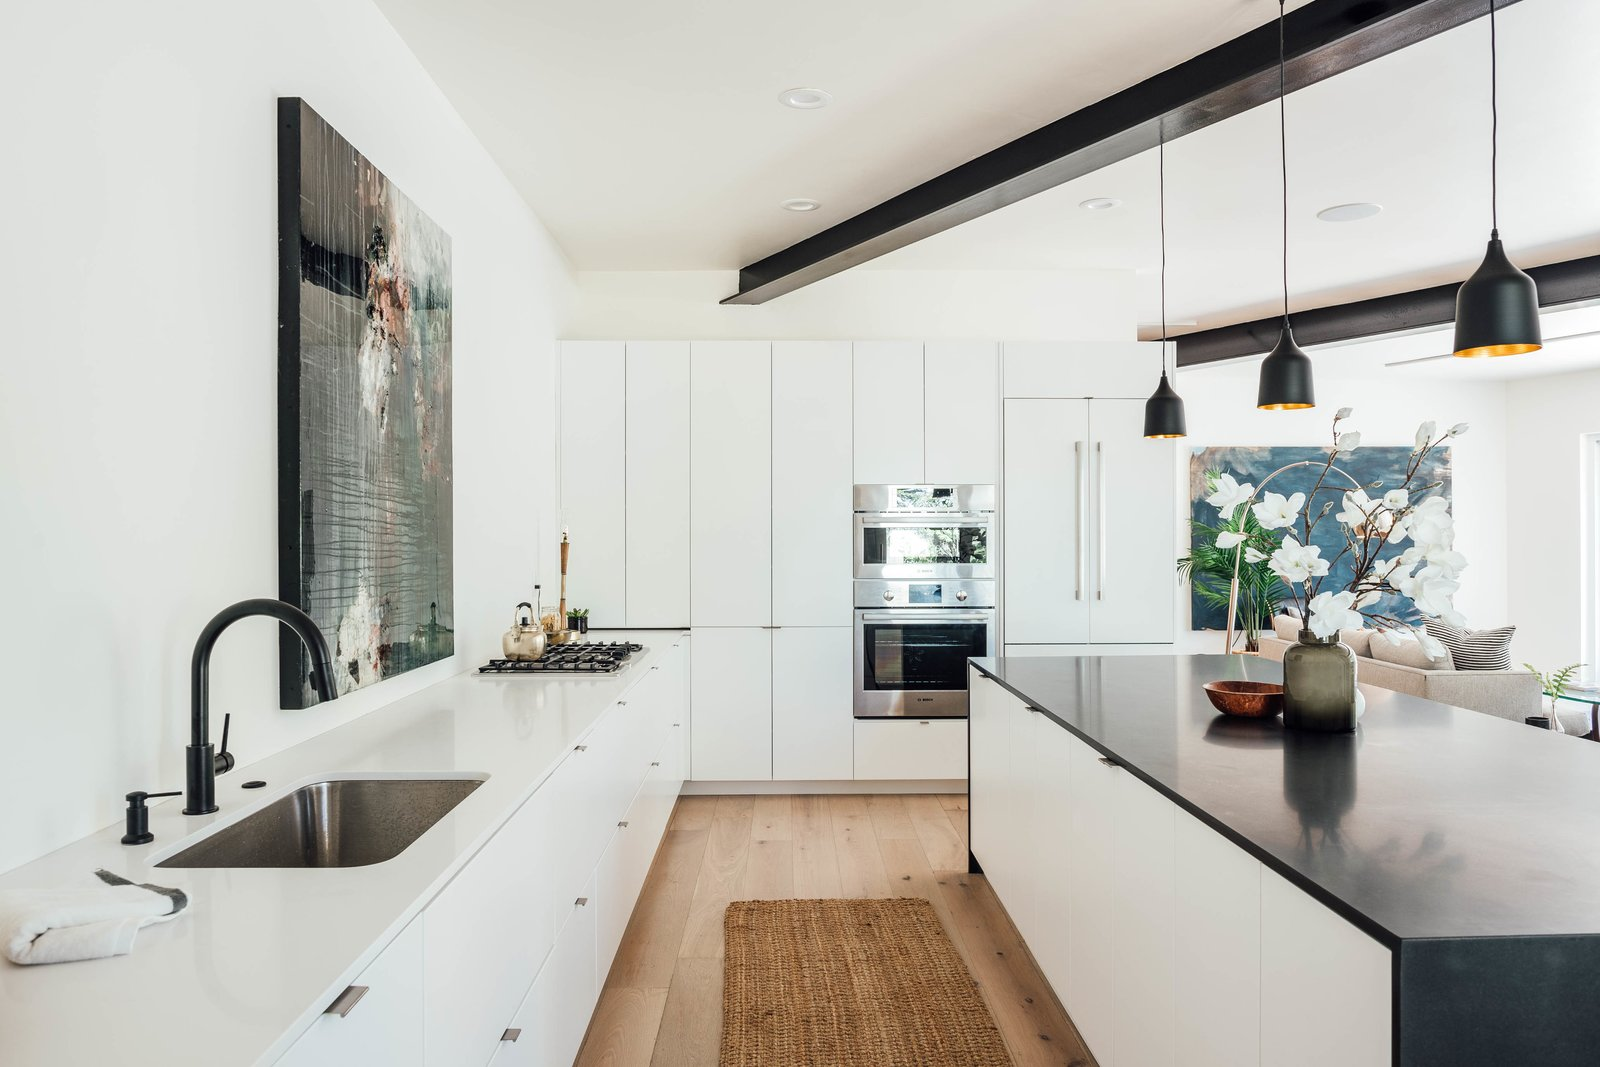 Kitchen, Recessed, Light Hardwood, Wall Oven, Refrigerator, Pendant, Undermount, White, Rug, and Cooktops The open kitchen provides plenty of workspace and storage.  Kitchen Cooktops Undermount Wall Oven Rug Photos from This Passive House in Park City Just Hit the Market For $1.1M